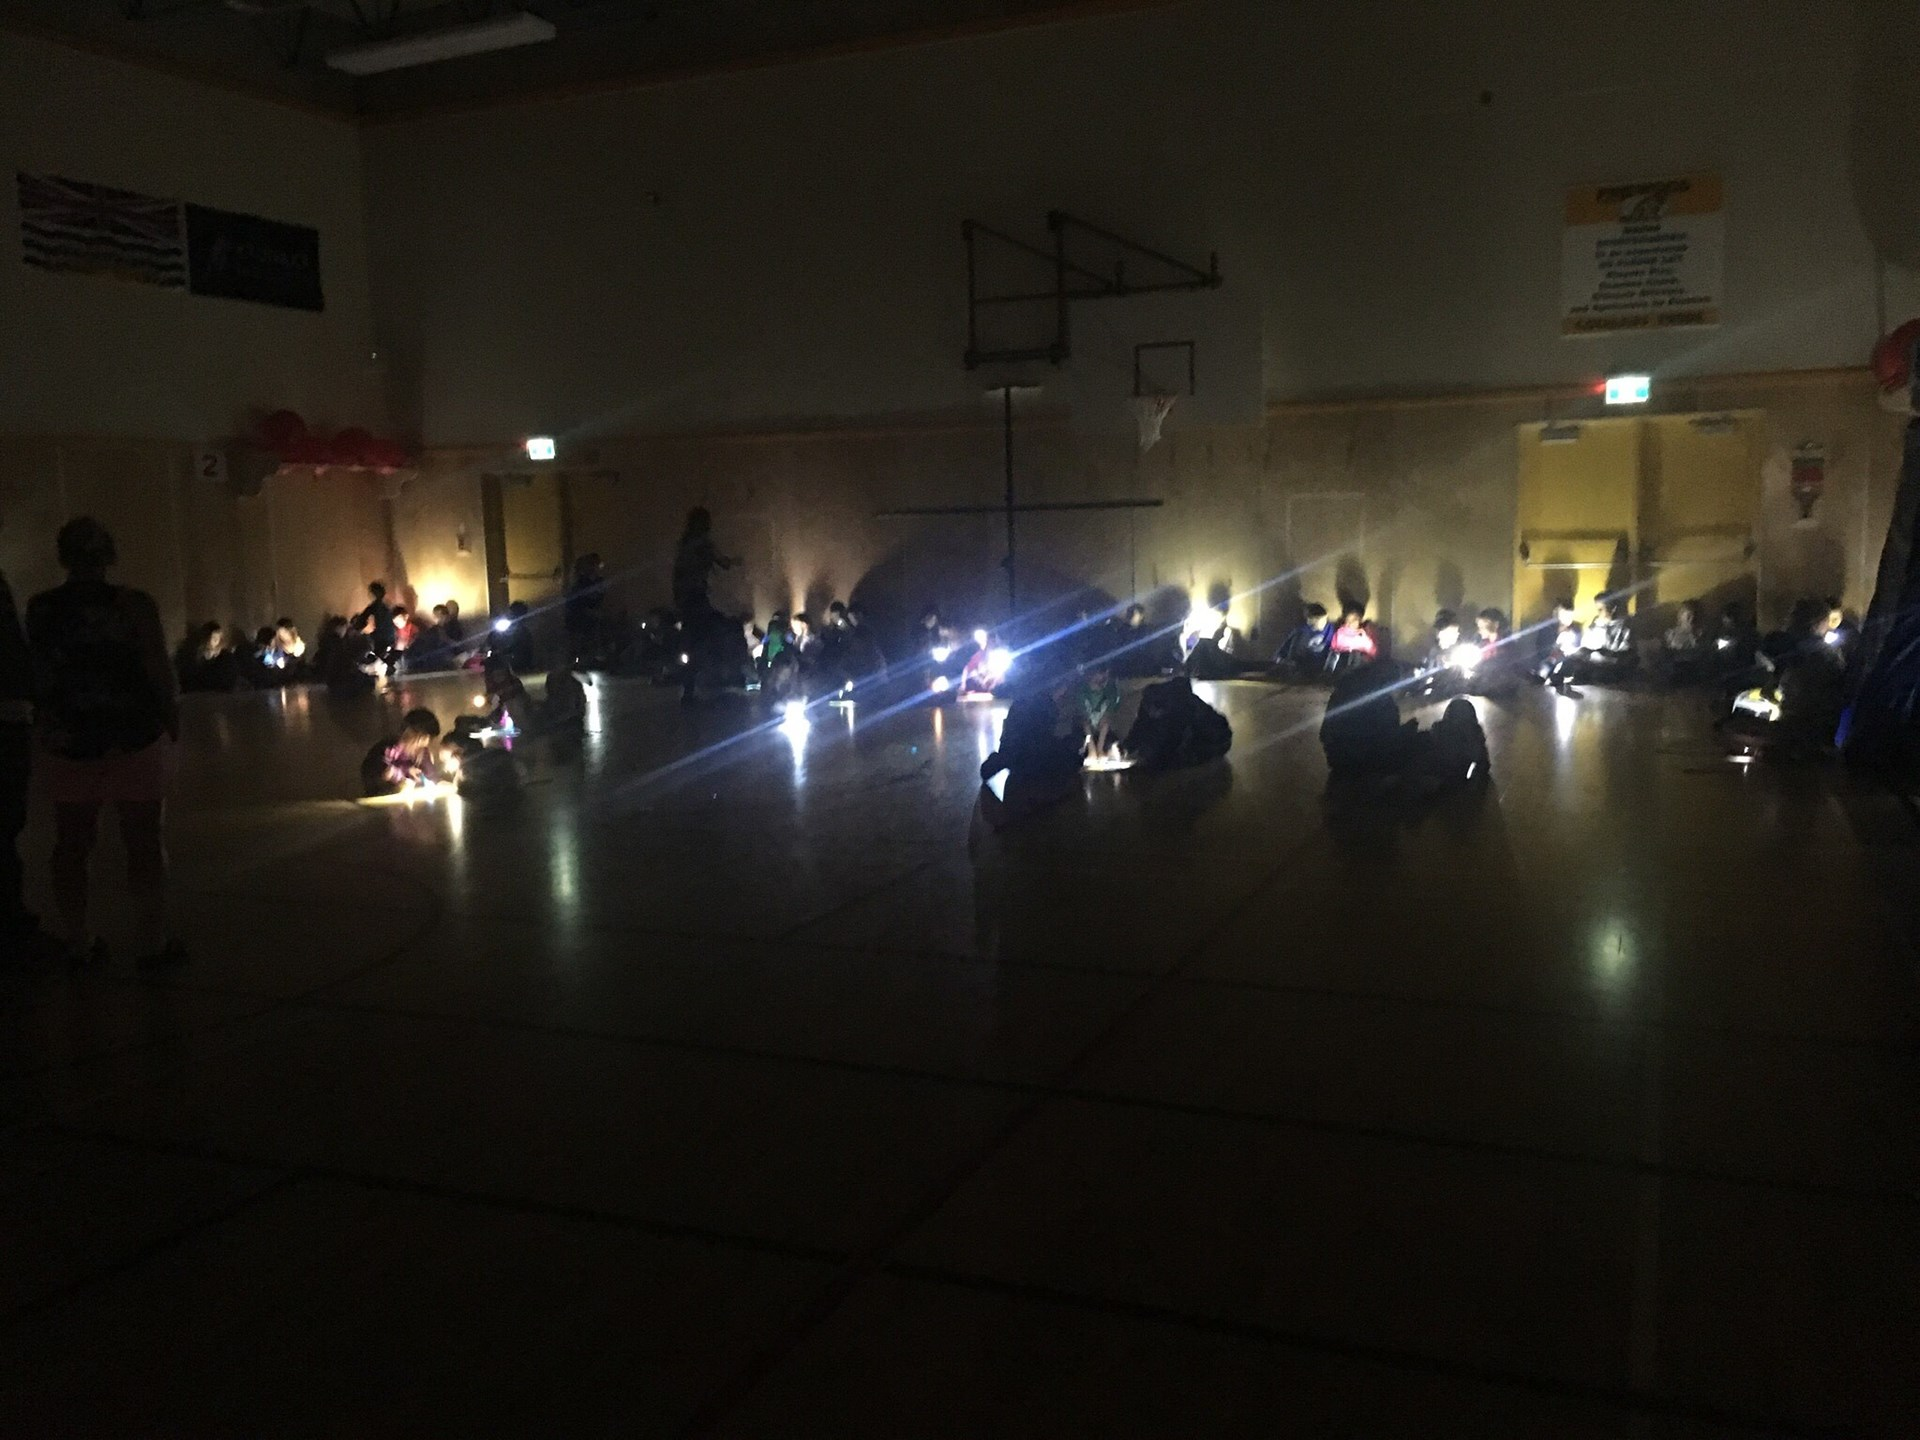 Flashlight Friday at Pinewood Elementary School